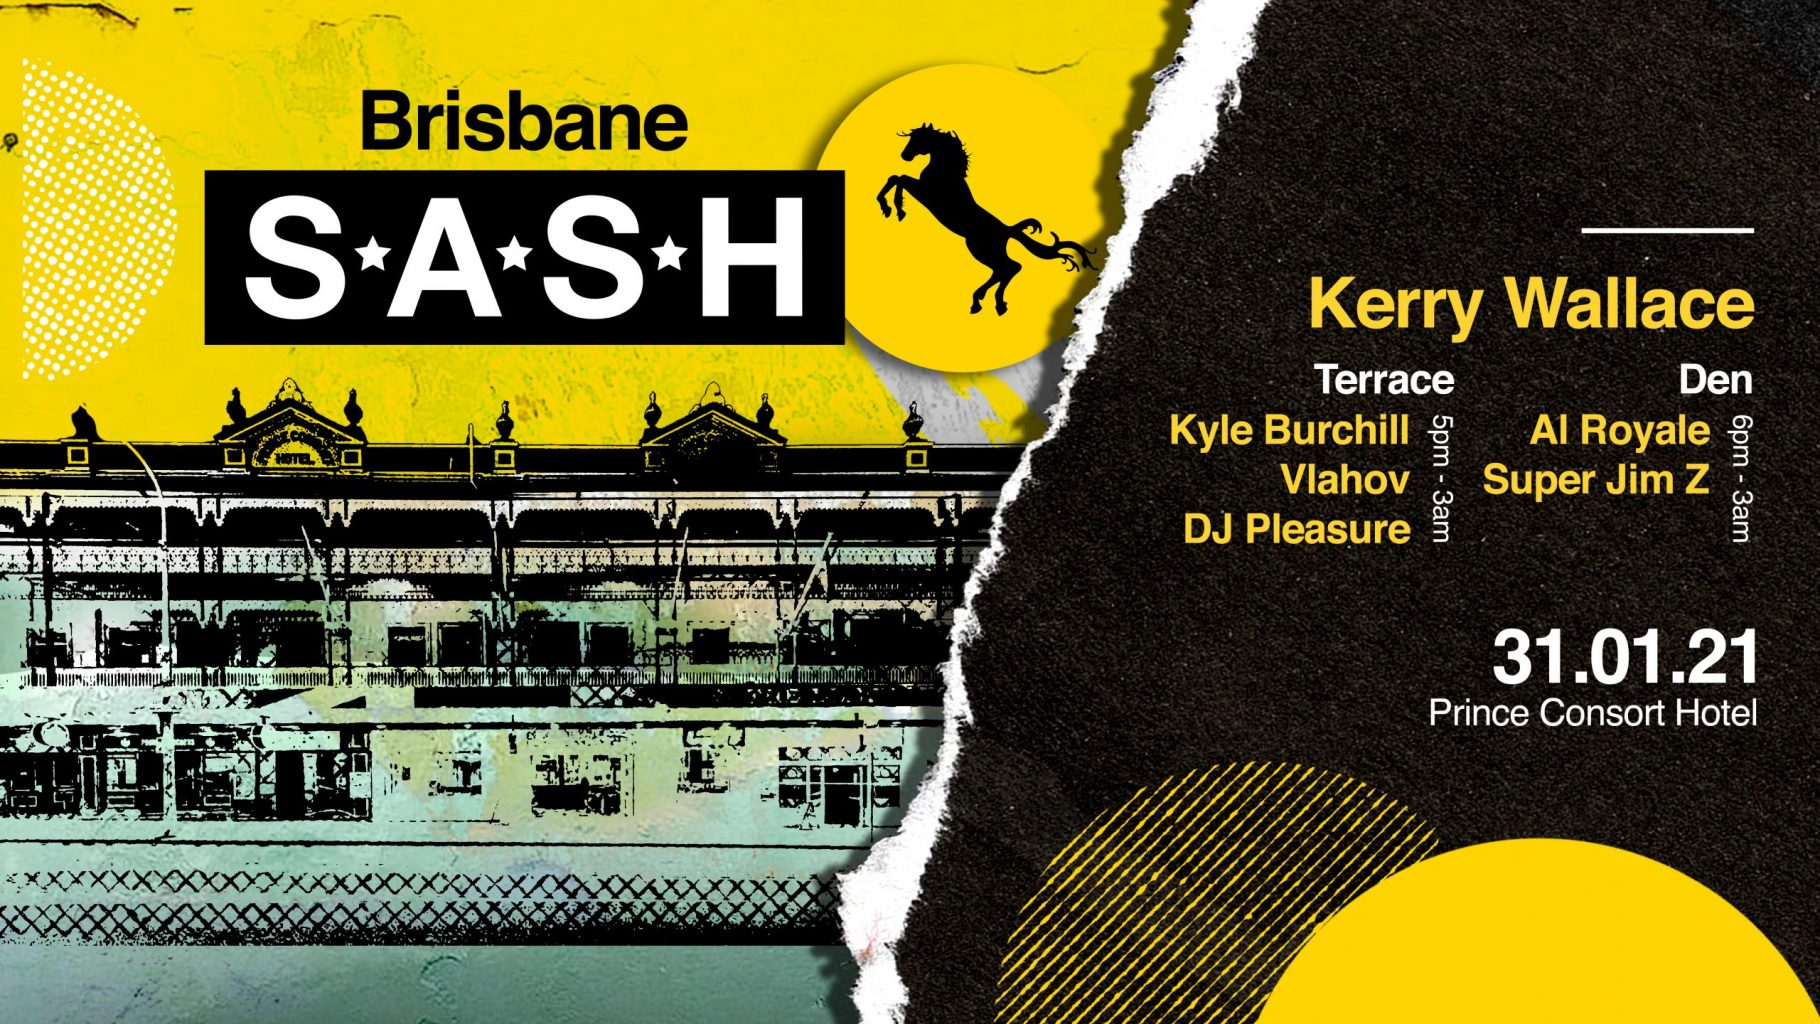 ★ S.A.S.H Brisbane ★ Opening Party ★ Kerry Wallace ★